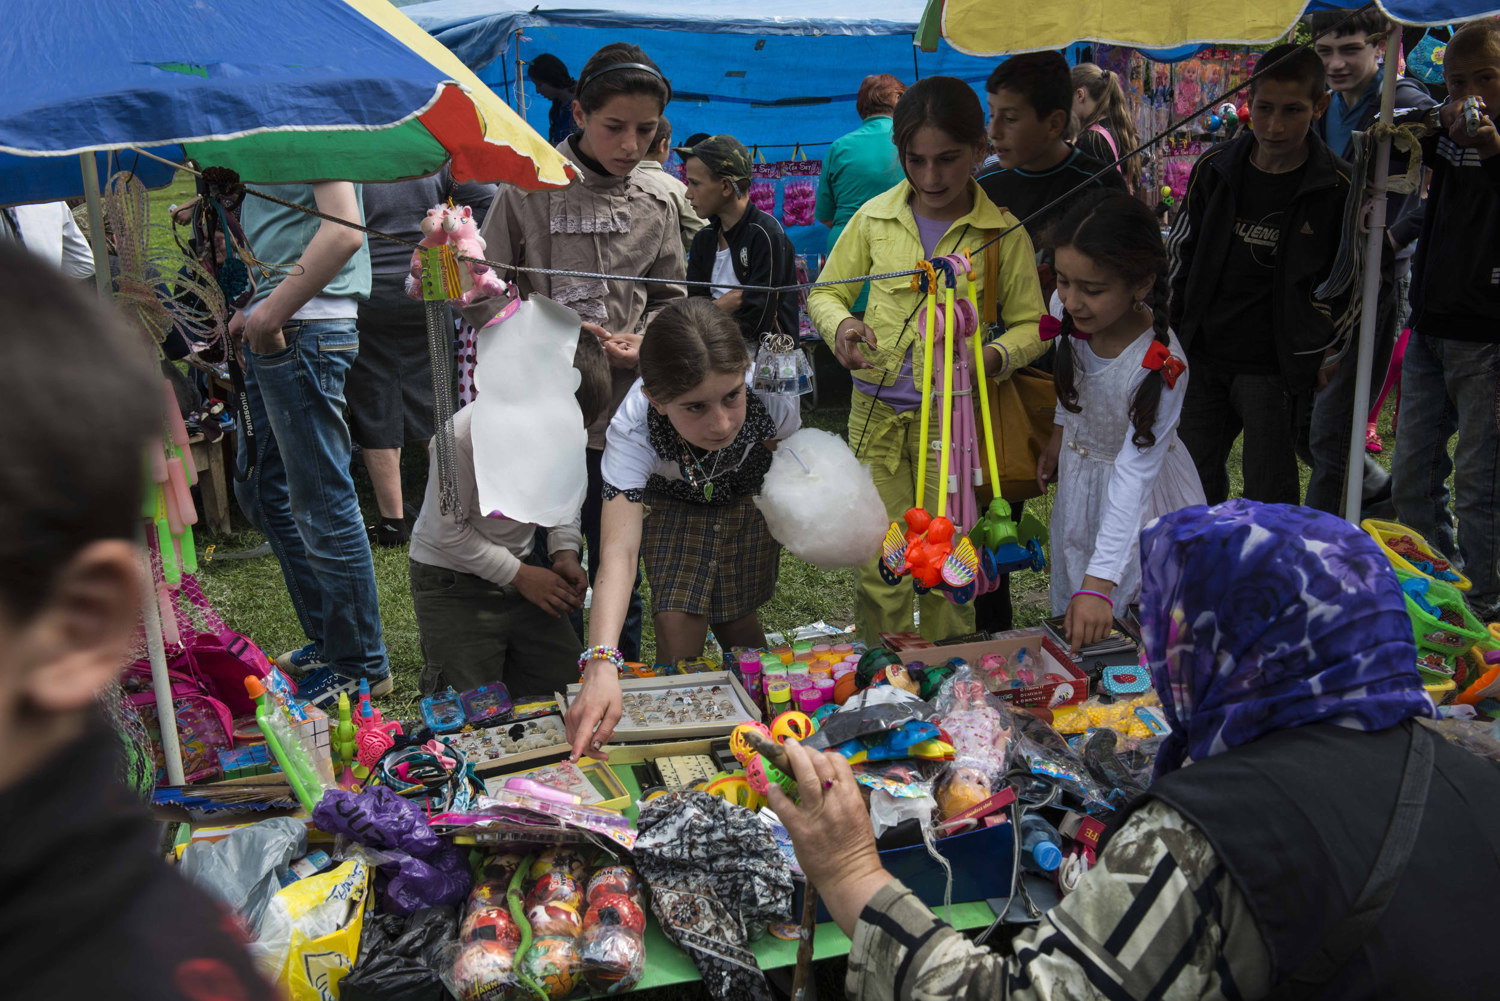 Girls buy trinkets and plastic jewelry at a fair held in honor of Victory Day in Duisi.